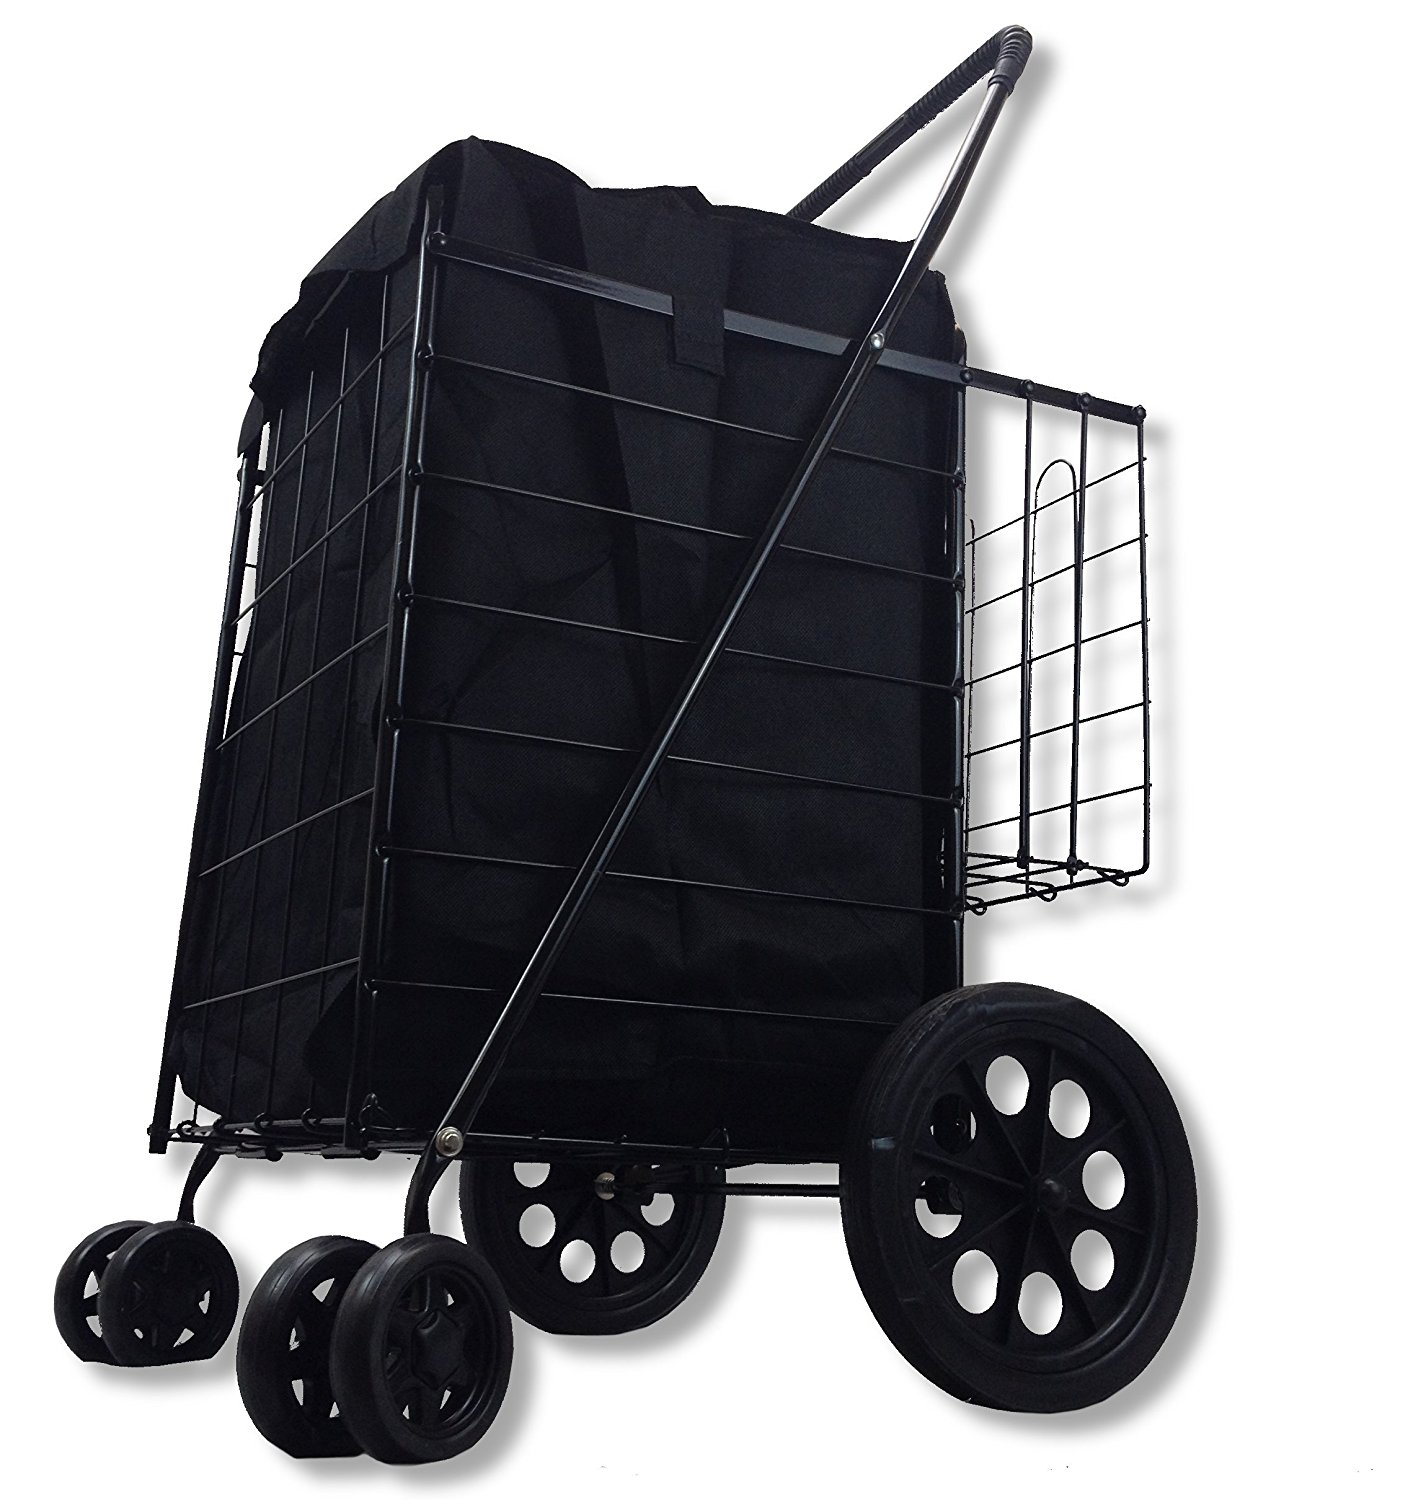 LavoHome Folding Shopping Cart Swivel Wheel Extra Basket Jumbo Black with Liner by SCF